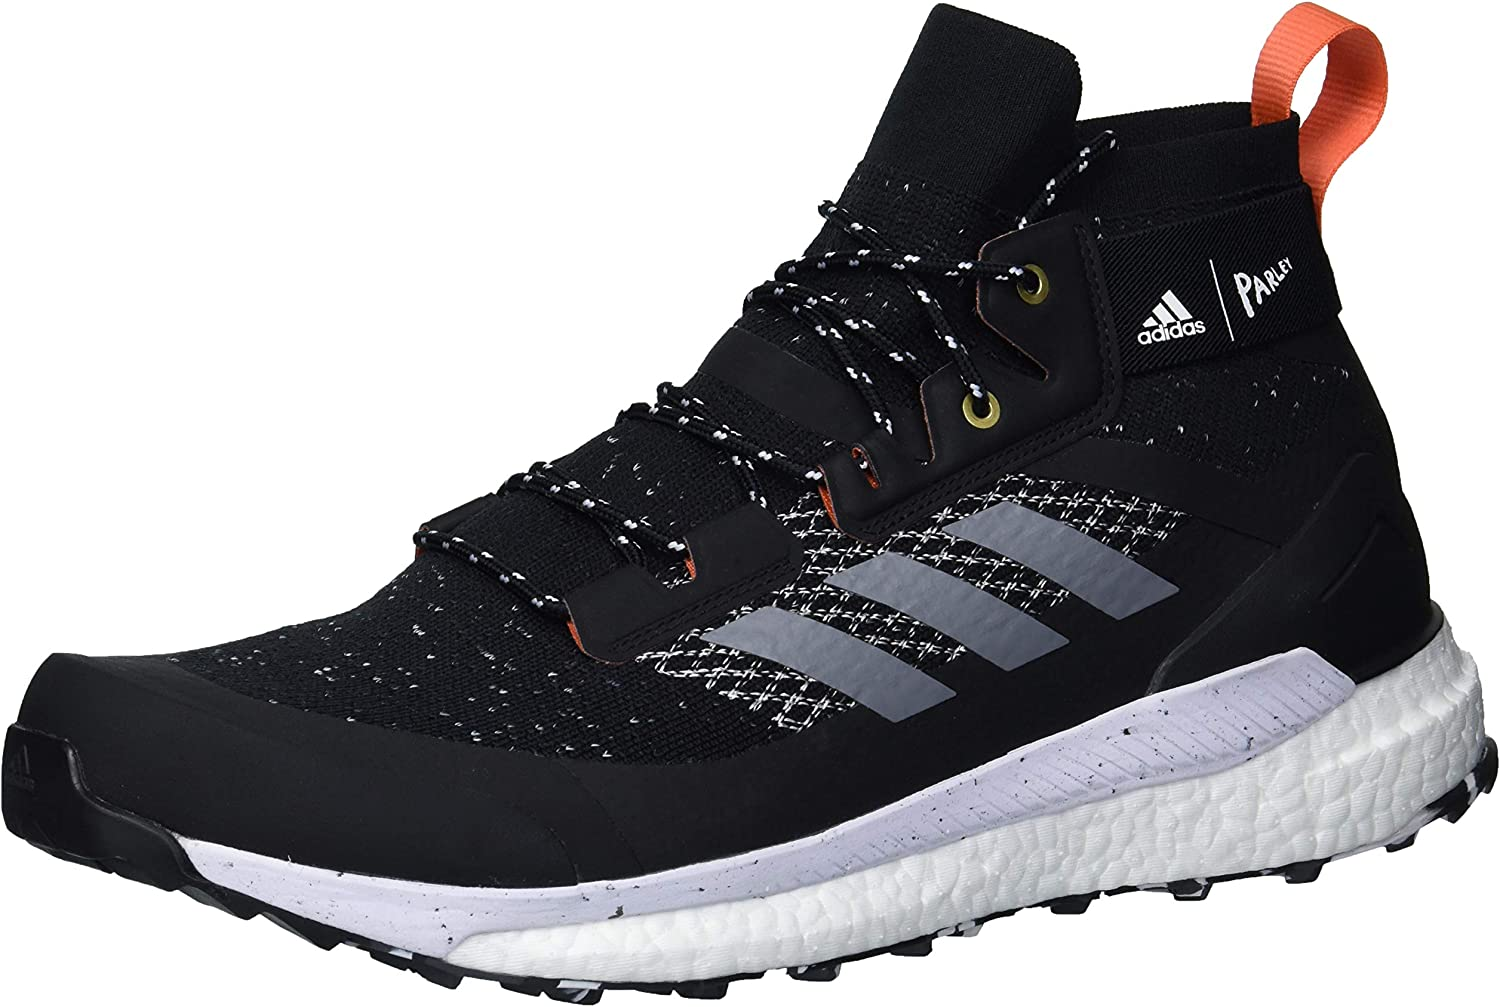 adidas Men's Terrex Free Hiker Boot Cheap mail order specialty store Hiking Gifts Parley